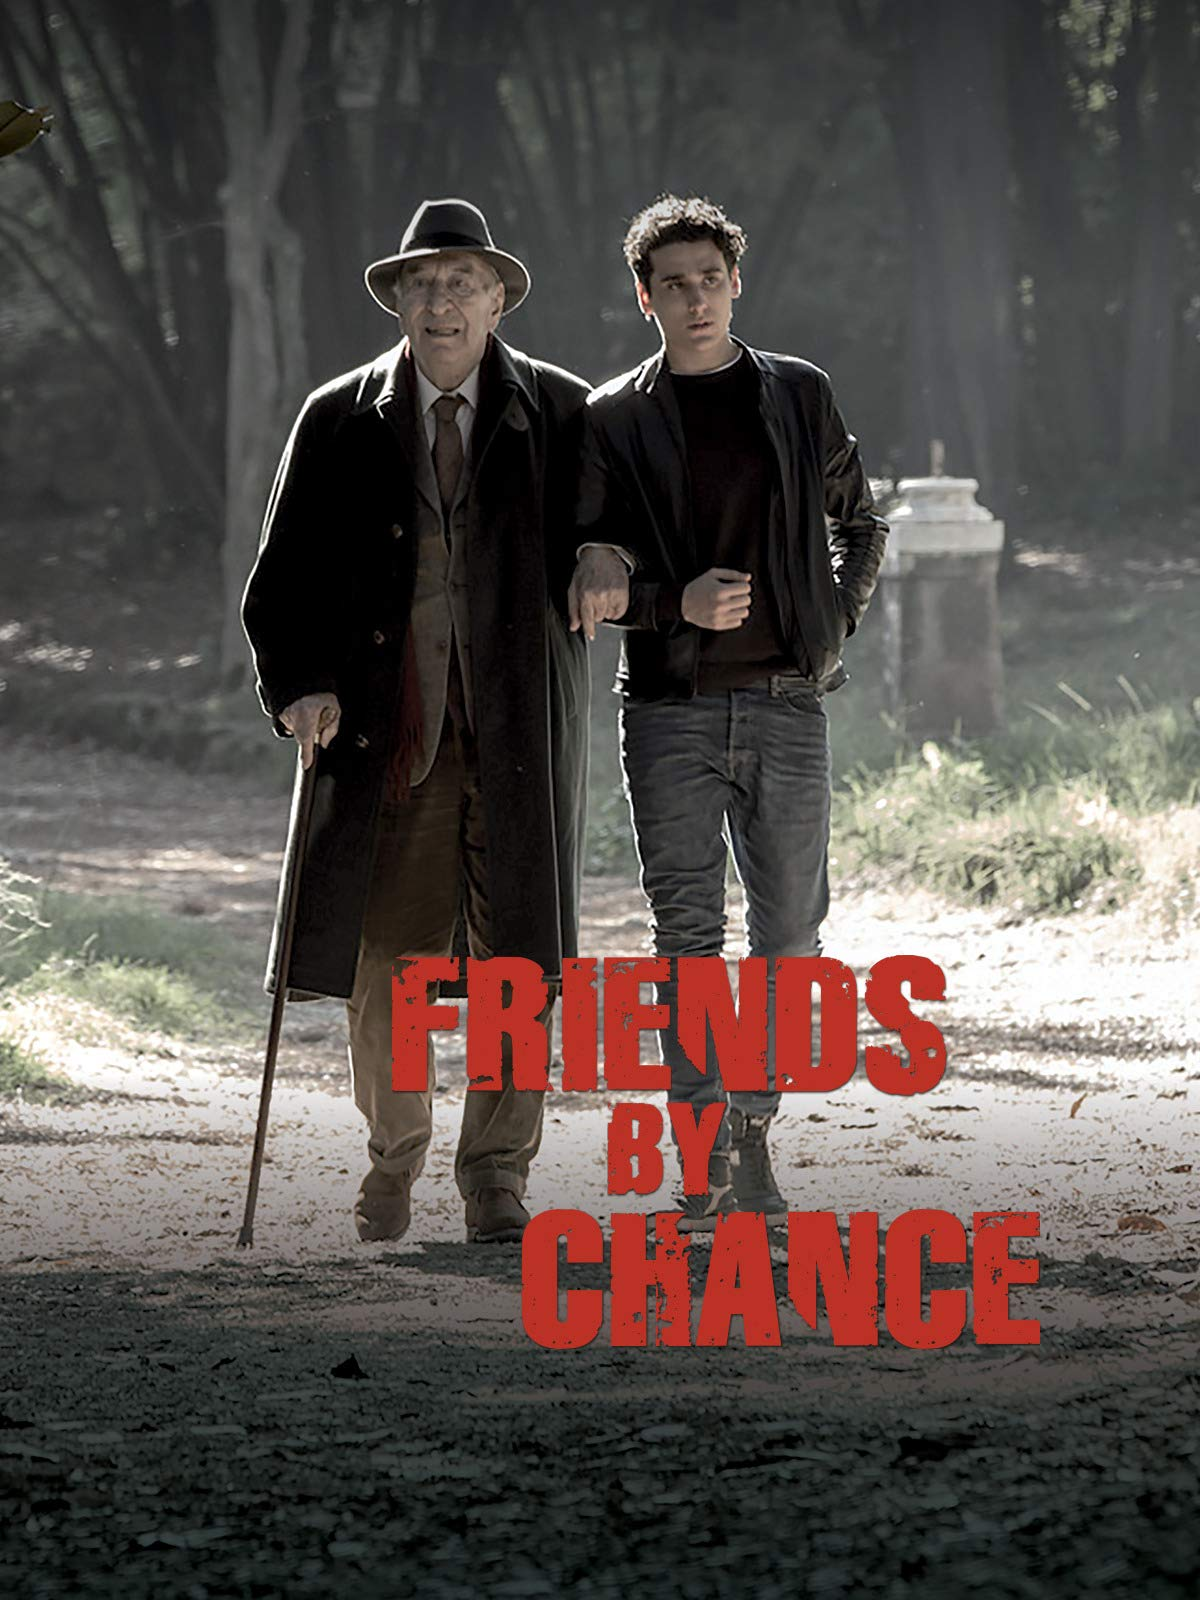 Friends by chance